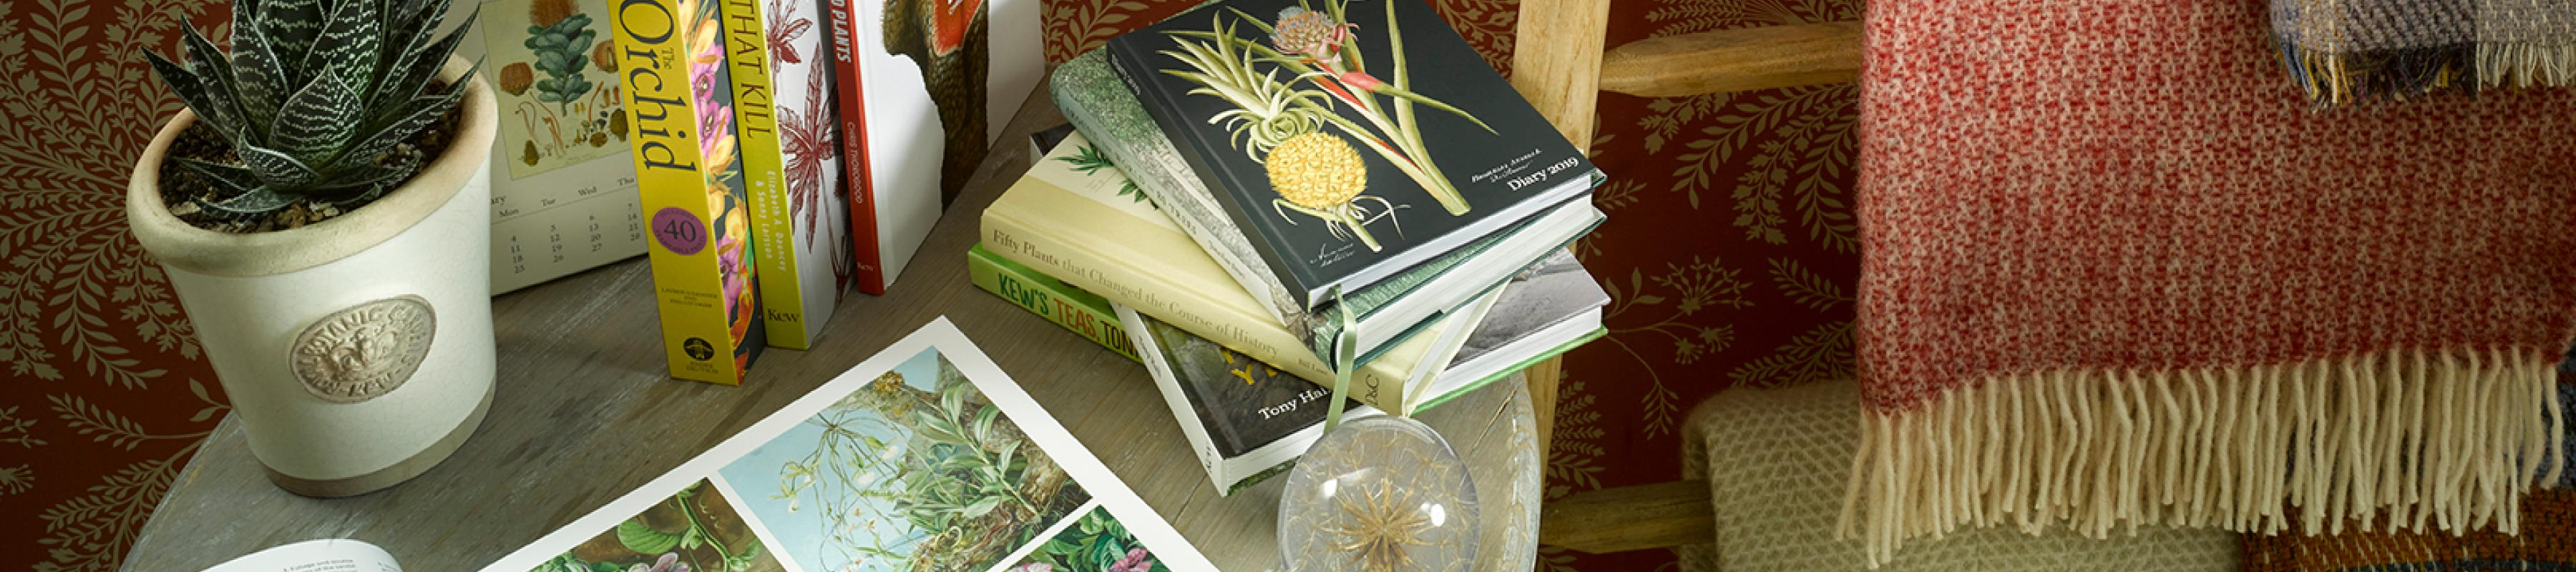 Books pulled on a coffee table along with a collection of Kew products